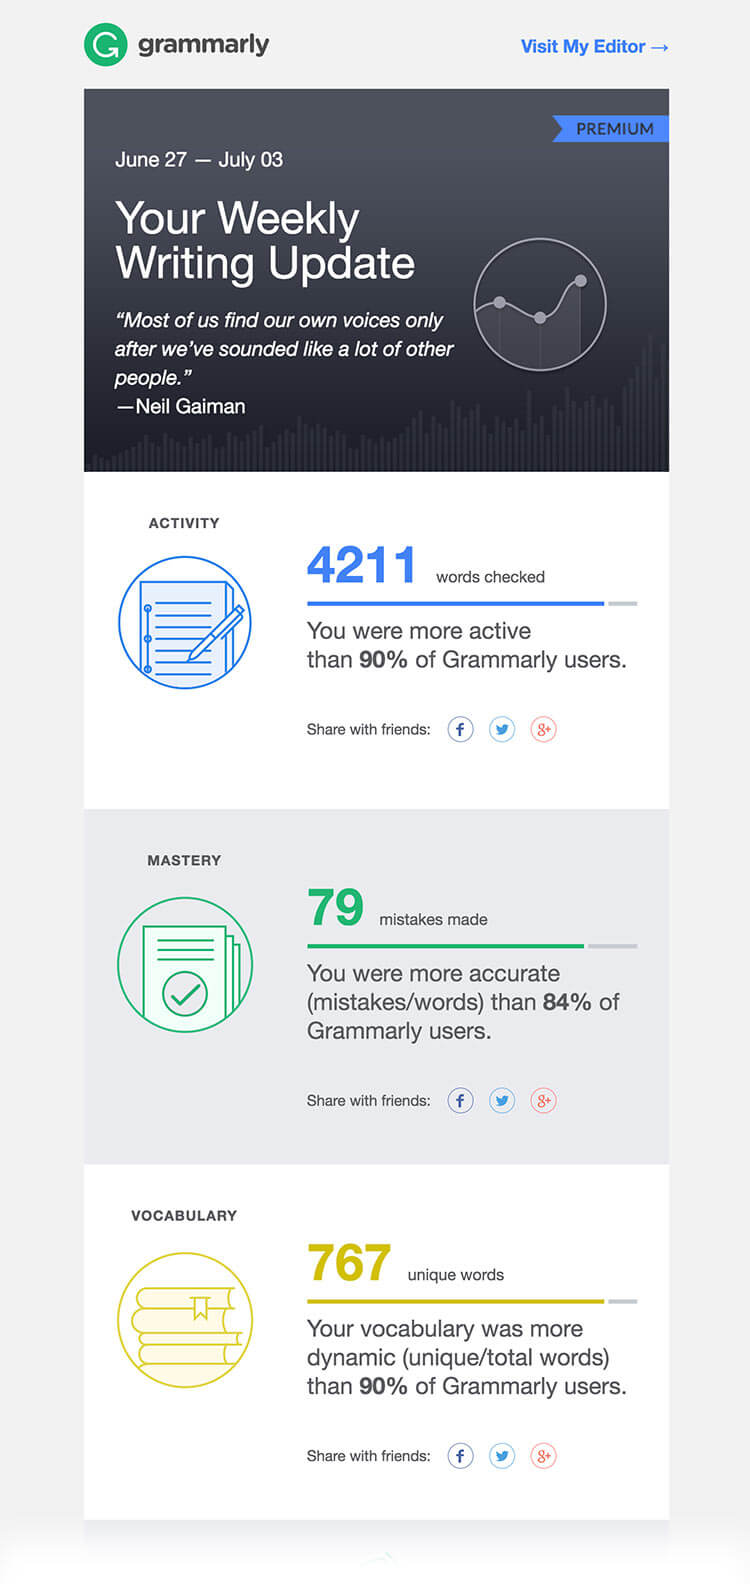 grammarly summary email